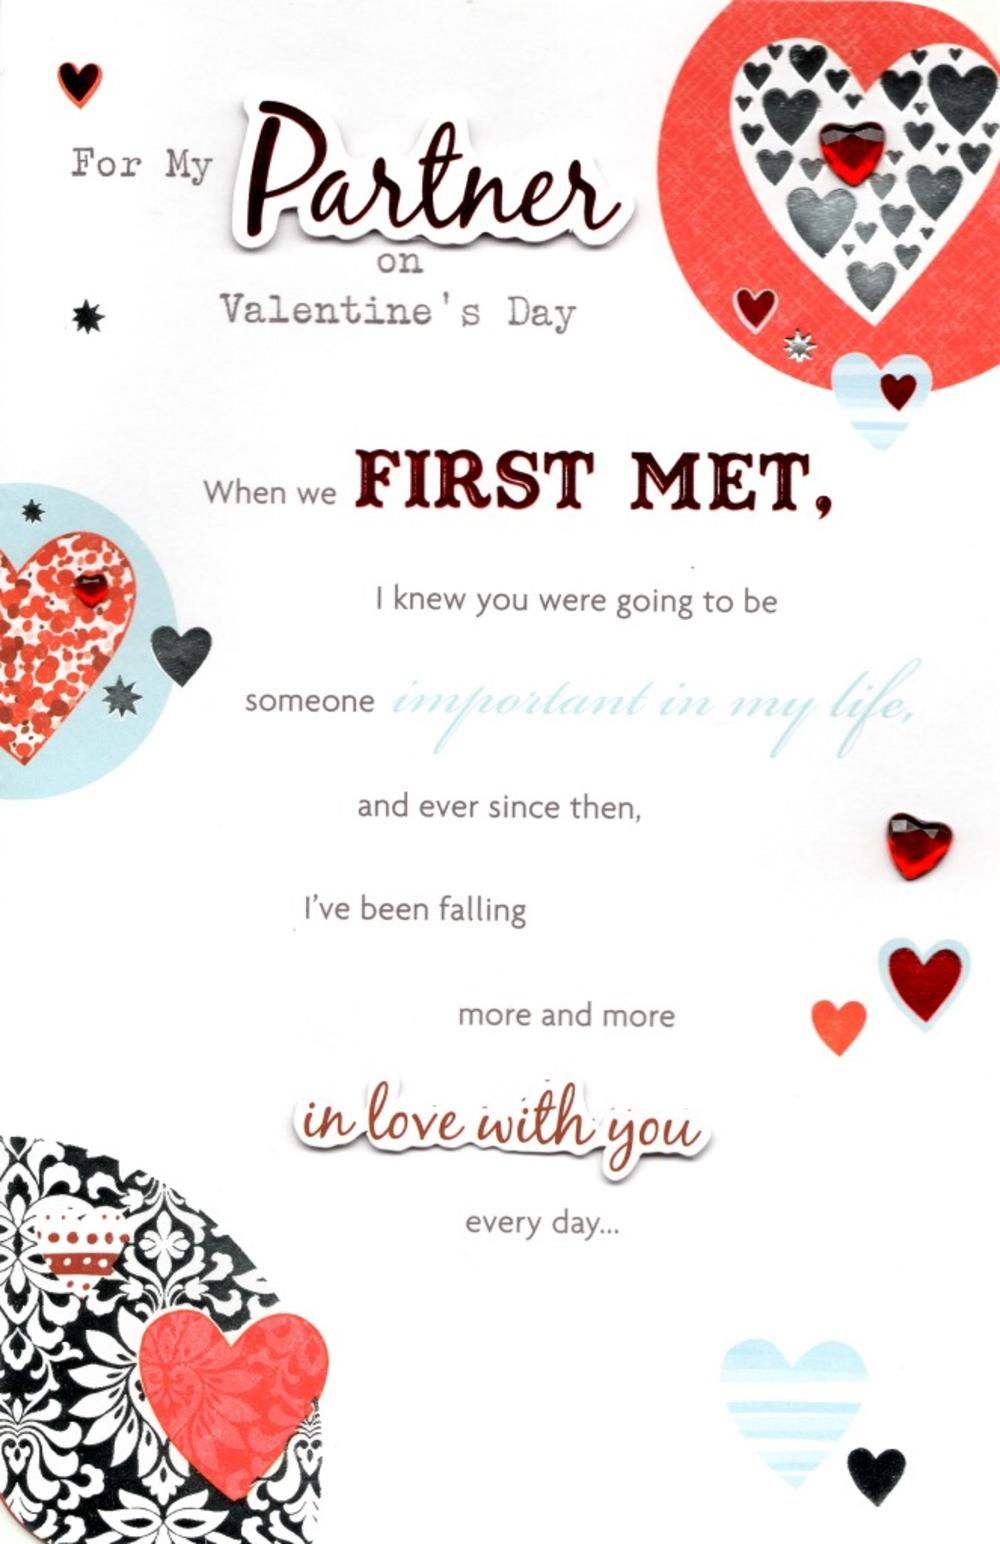 Partner Valentine's Day Greeting Card | Cards